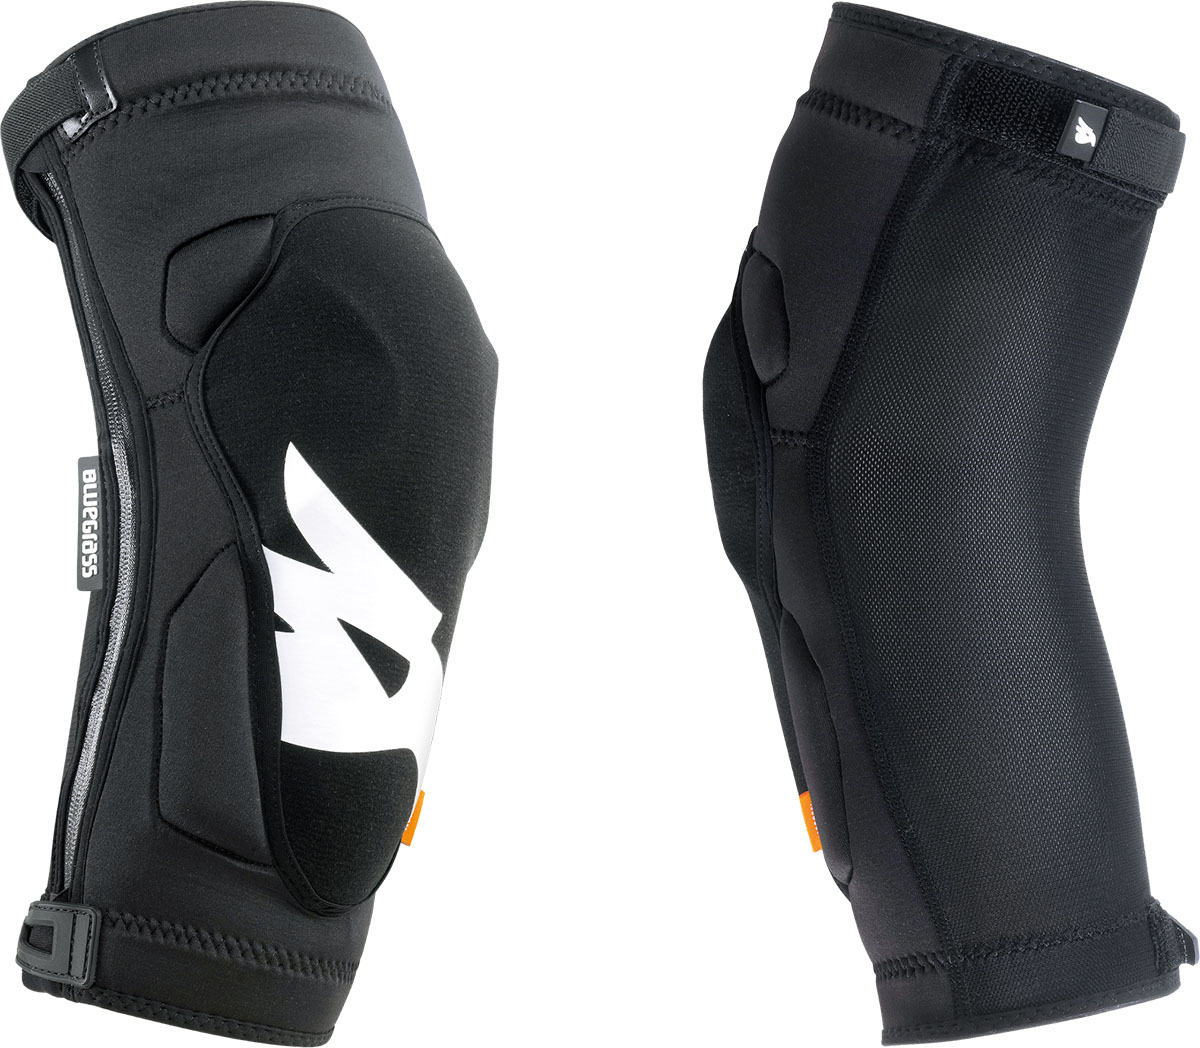 Bluegrass Solid D30 Knee Guards | Beskyttelse